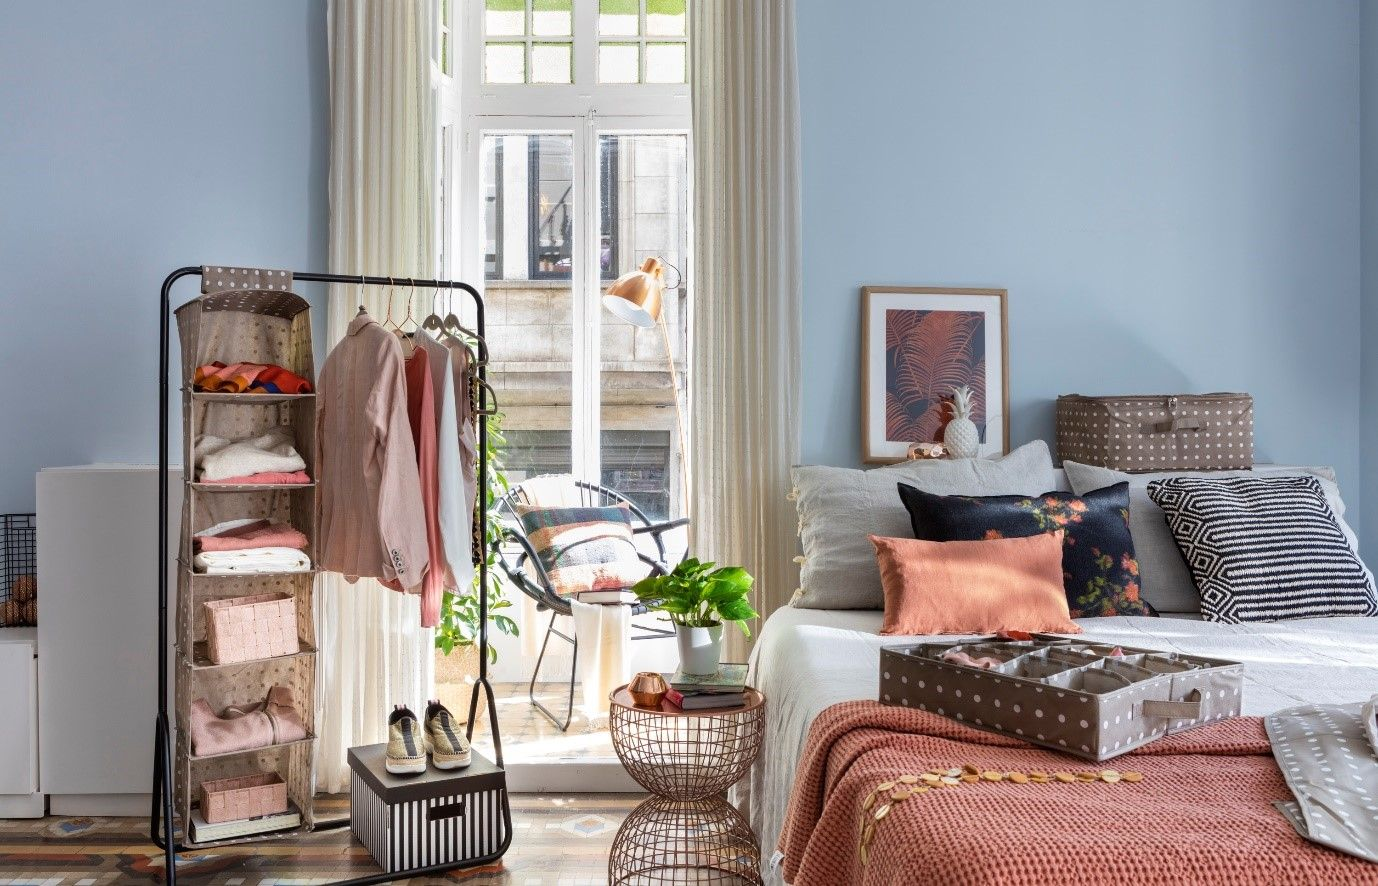 Tips to keep your home tidier - Bedroom